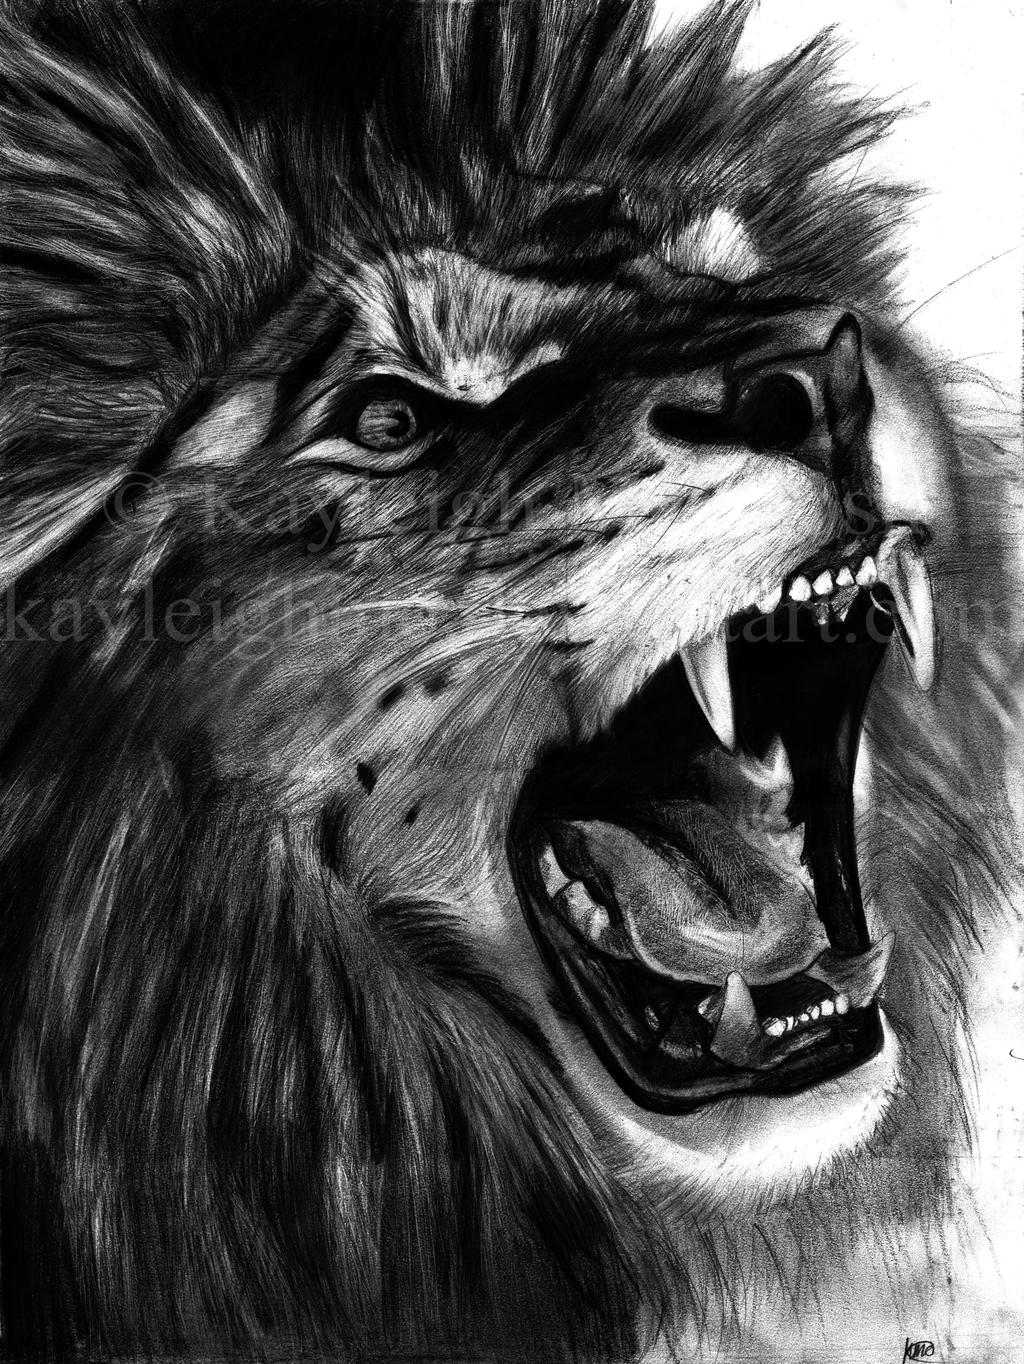 Angry Lion by kayleighmc on DeviantArt